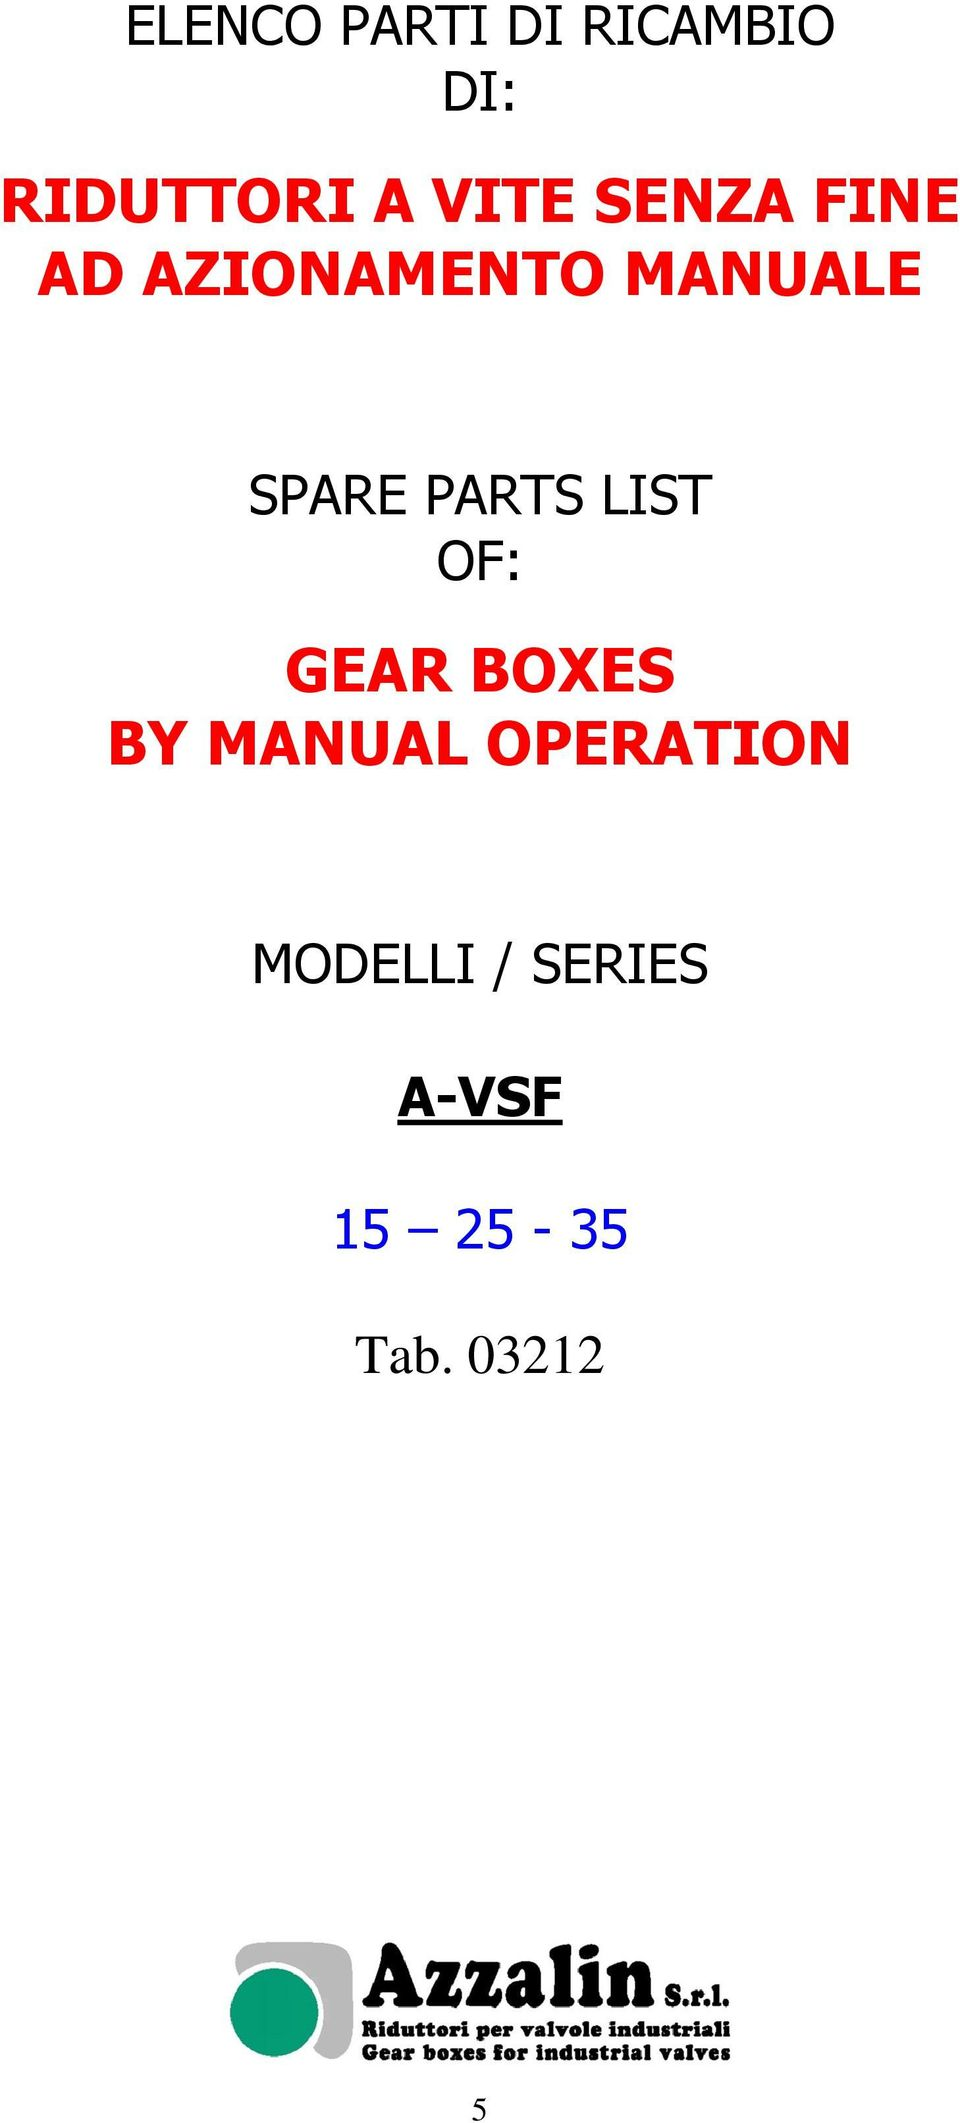 SPARE PARTS LIST OF: GEAR BOXES BY MANUAL